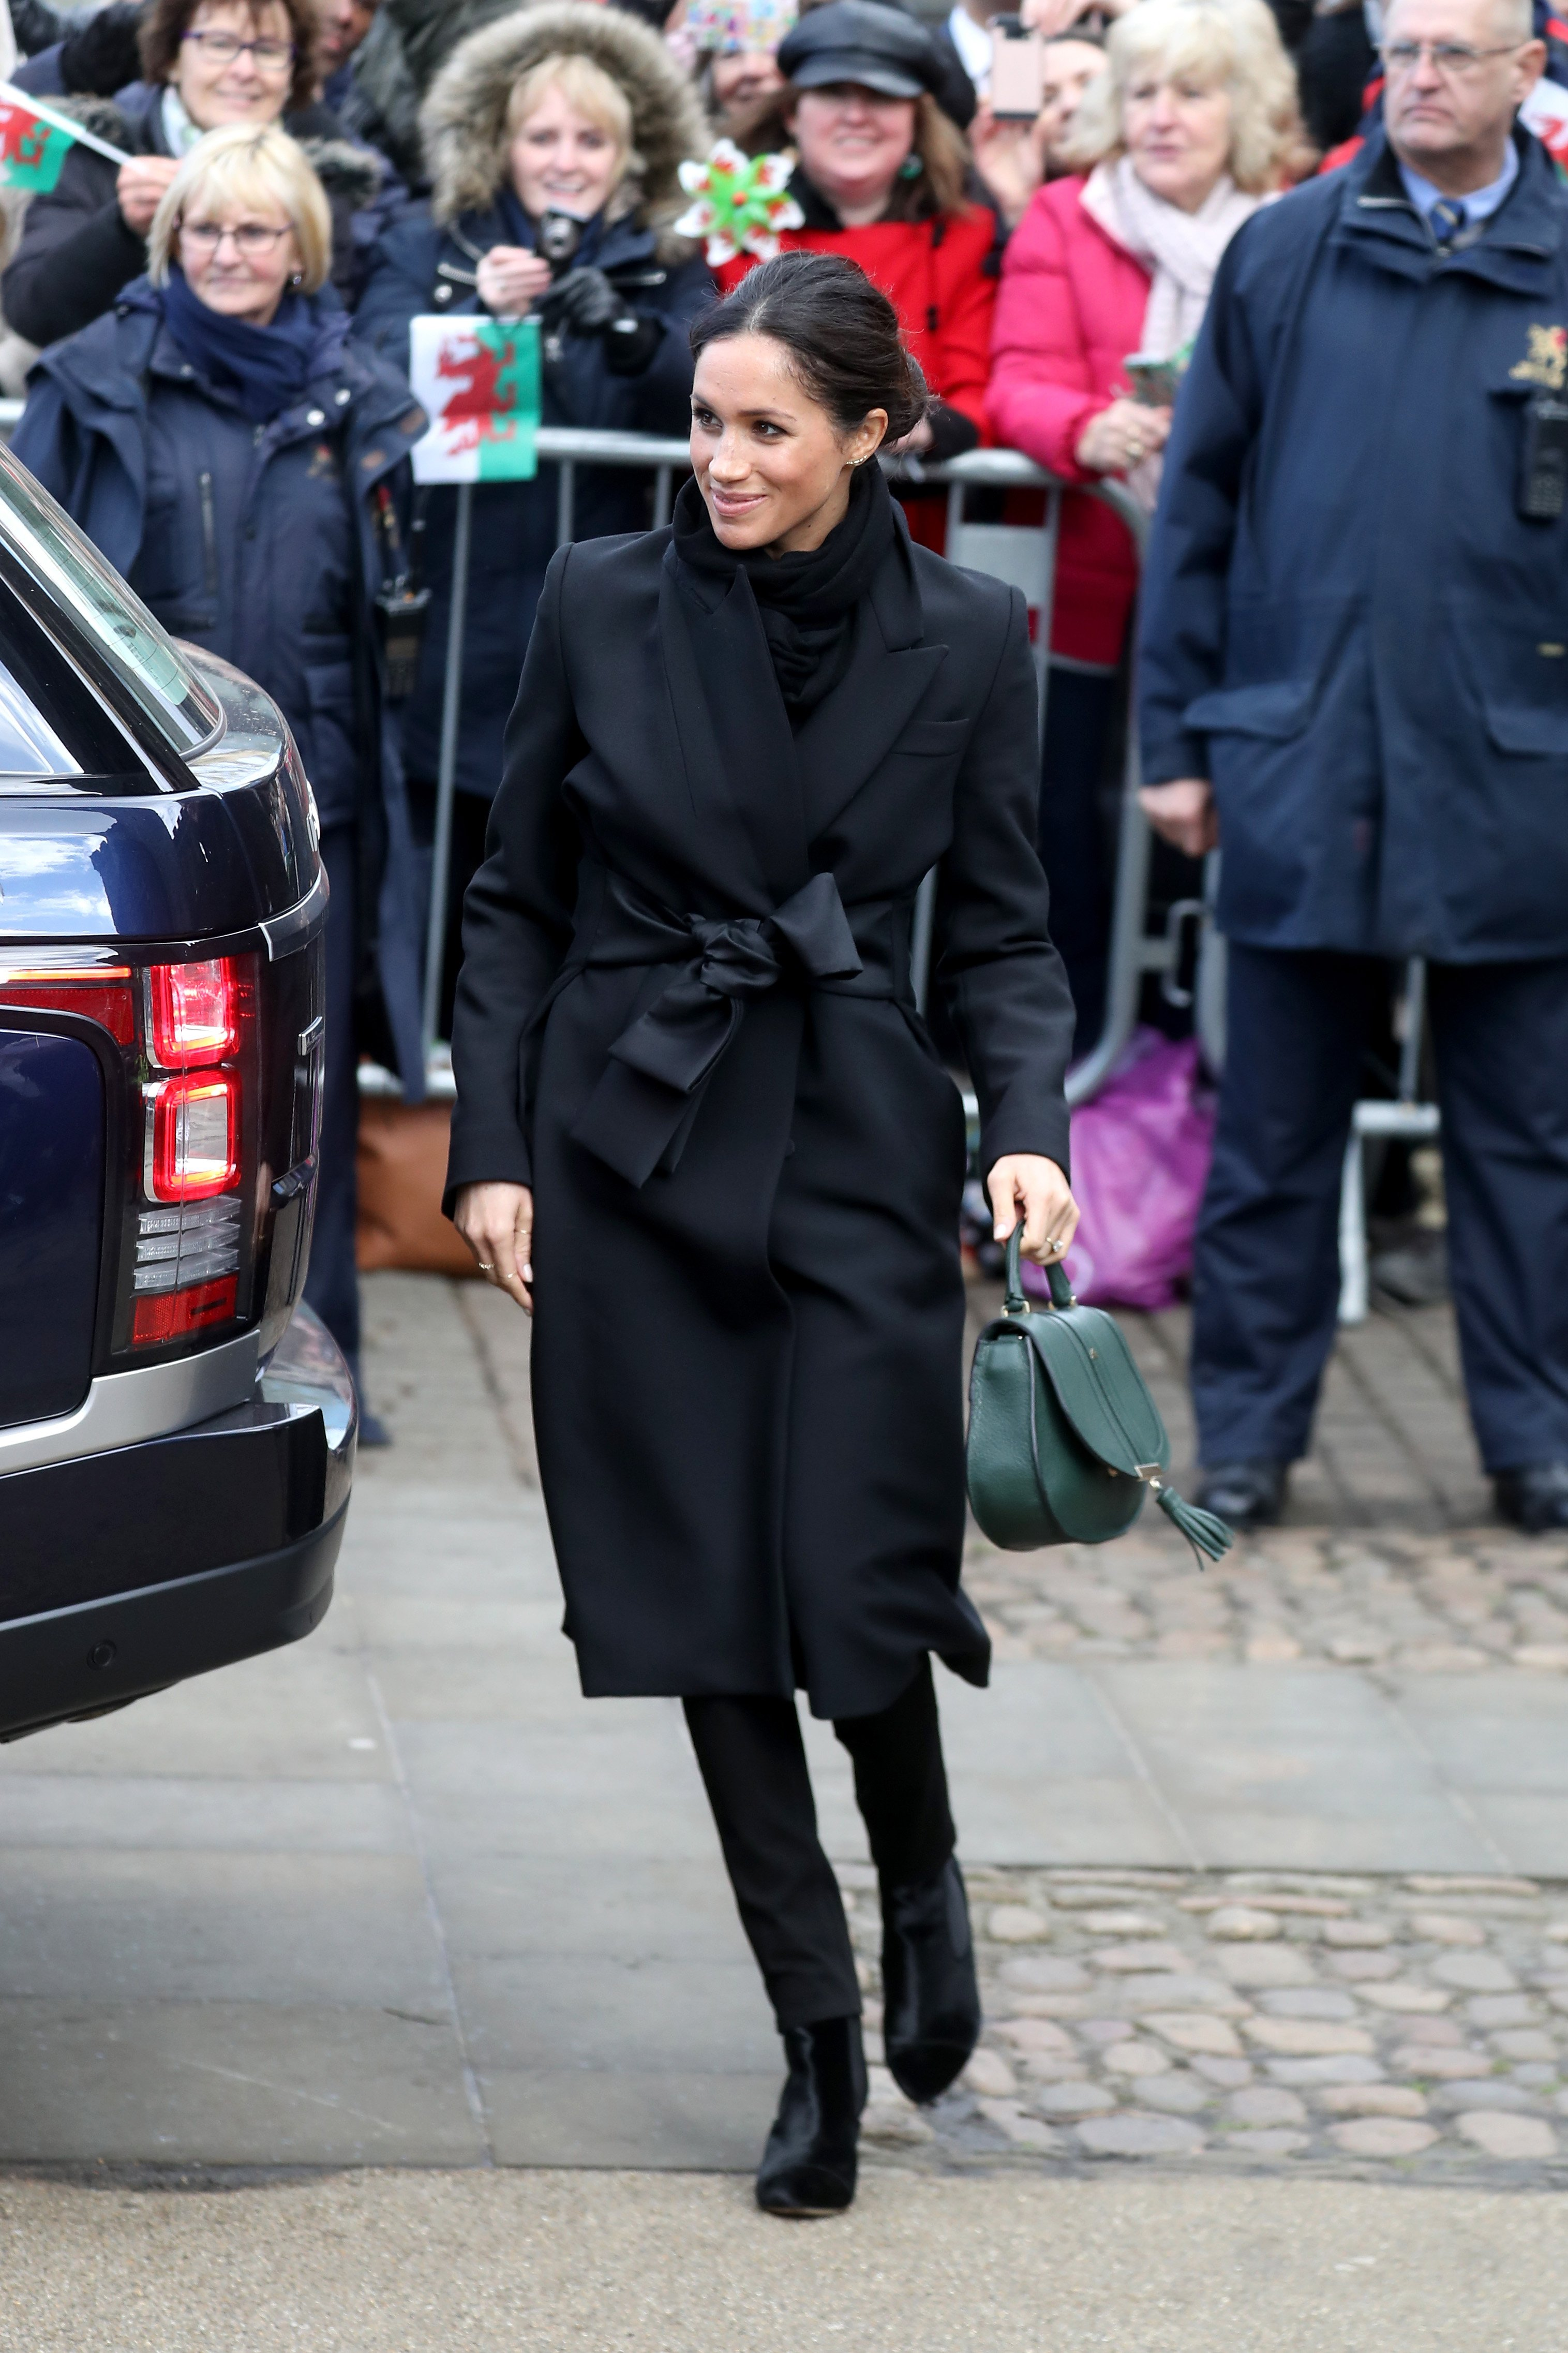 Meghan Markle arrives to a walkabout at Cardiff Castle on Jan. 18, 2018 in Cardiff, Wales | Photo: Getty Images